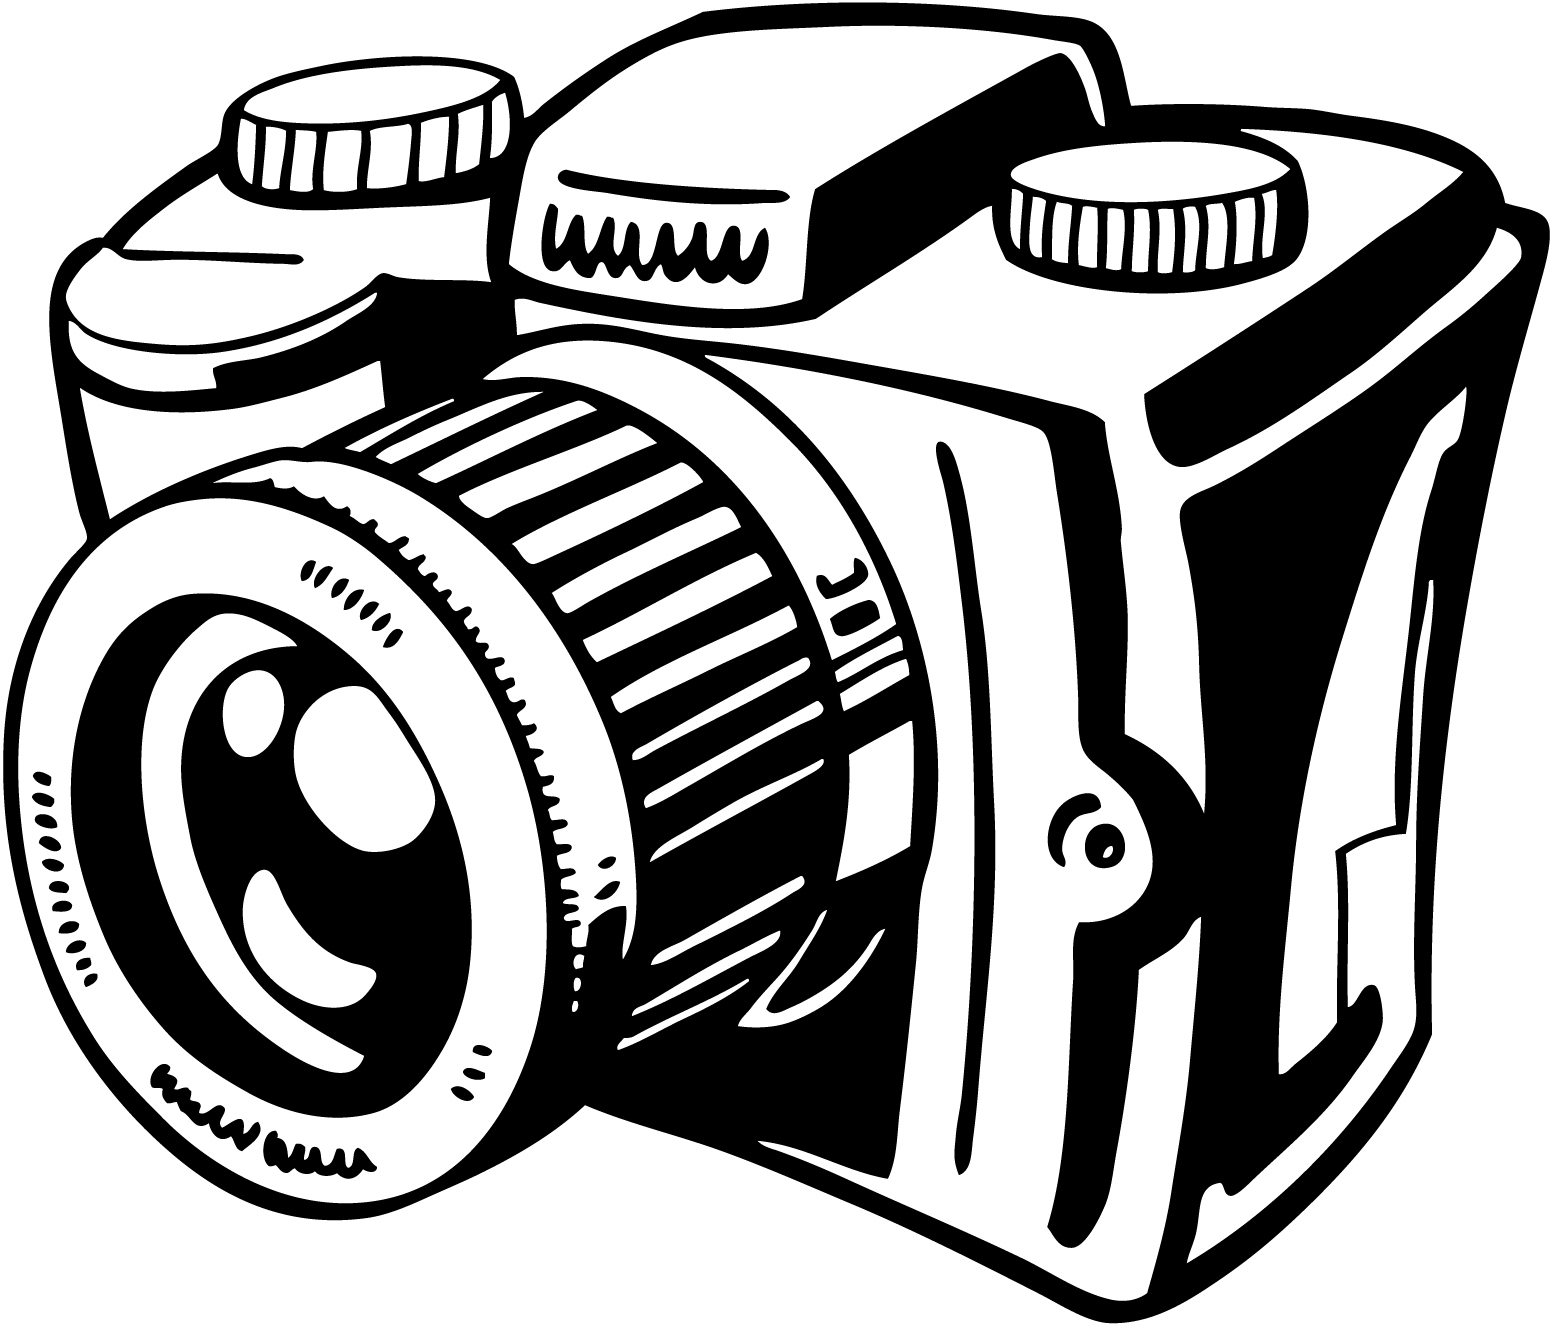 Camera clipart black and white 1 » Clipart Station.